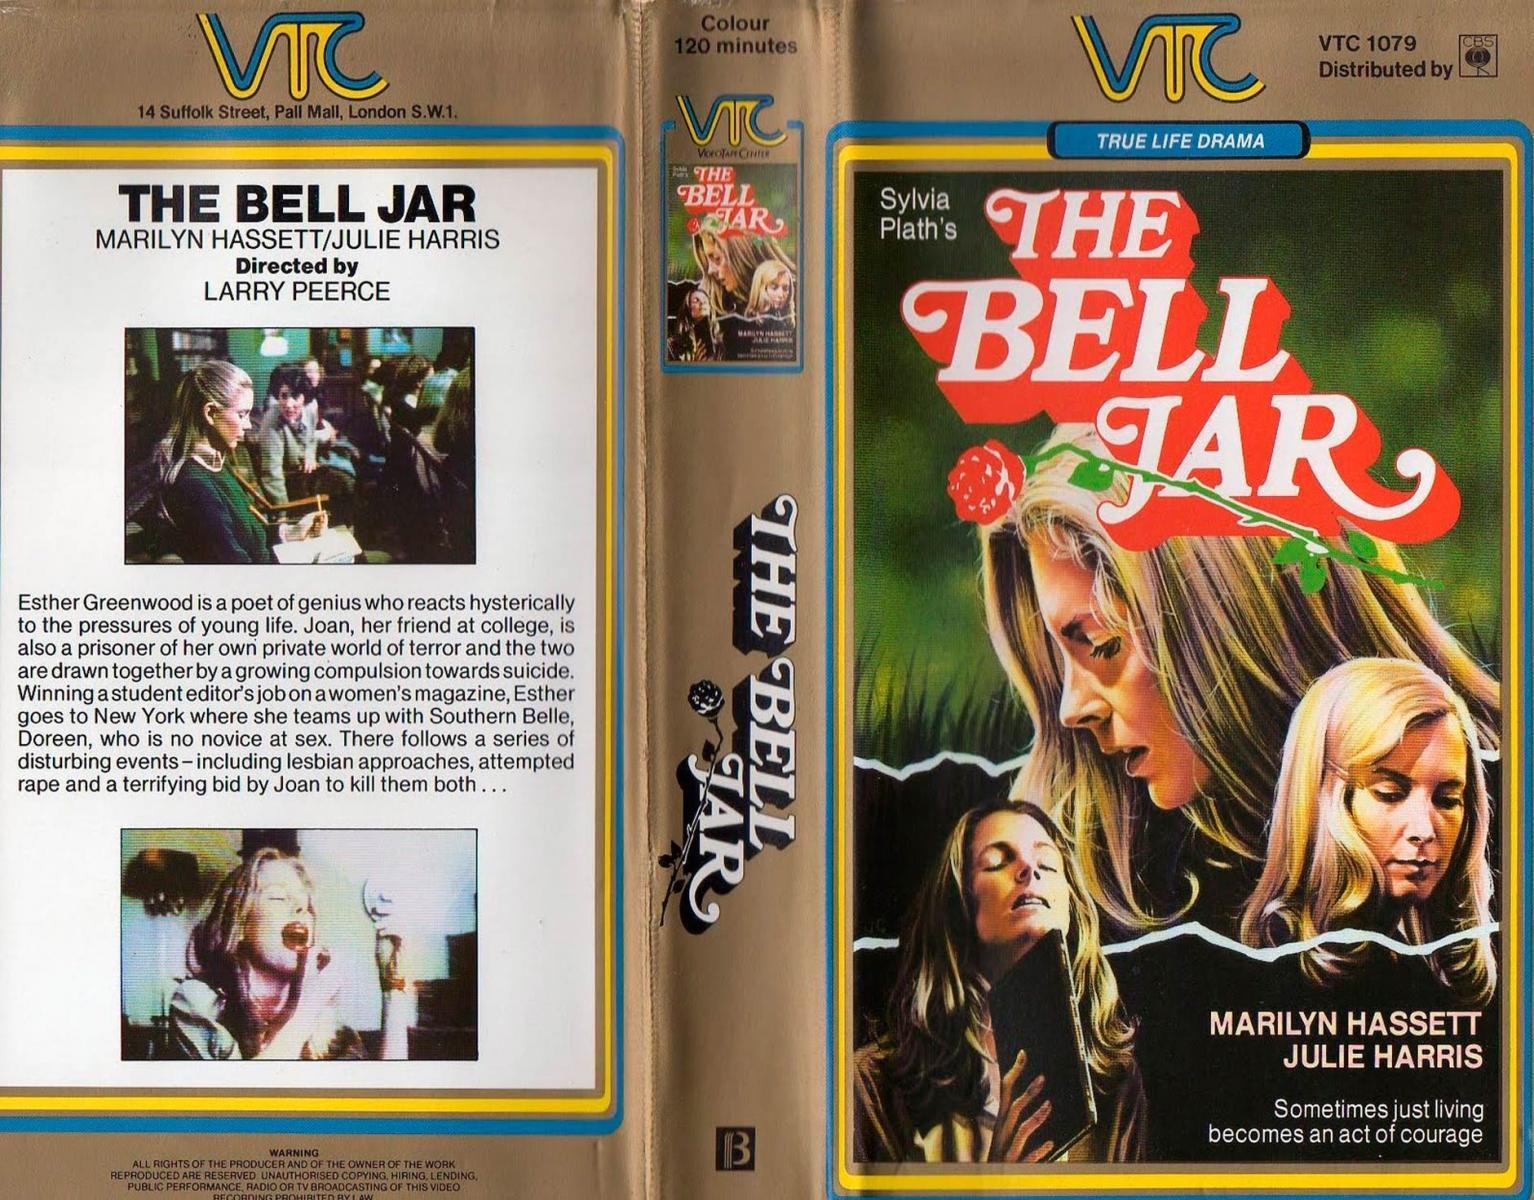 an analysis of what contributed to esthers suicide attempts in the bell jar The bell jar traces college student esther greenwood's trip to new york city, awarded to her for her literary skills, and her subsequent breakdown esther narrates how, unsuccessful both professionally and socially in new york, she falls into a depression that leads to an obsession with suicide and finally to a serious suicide attempt.